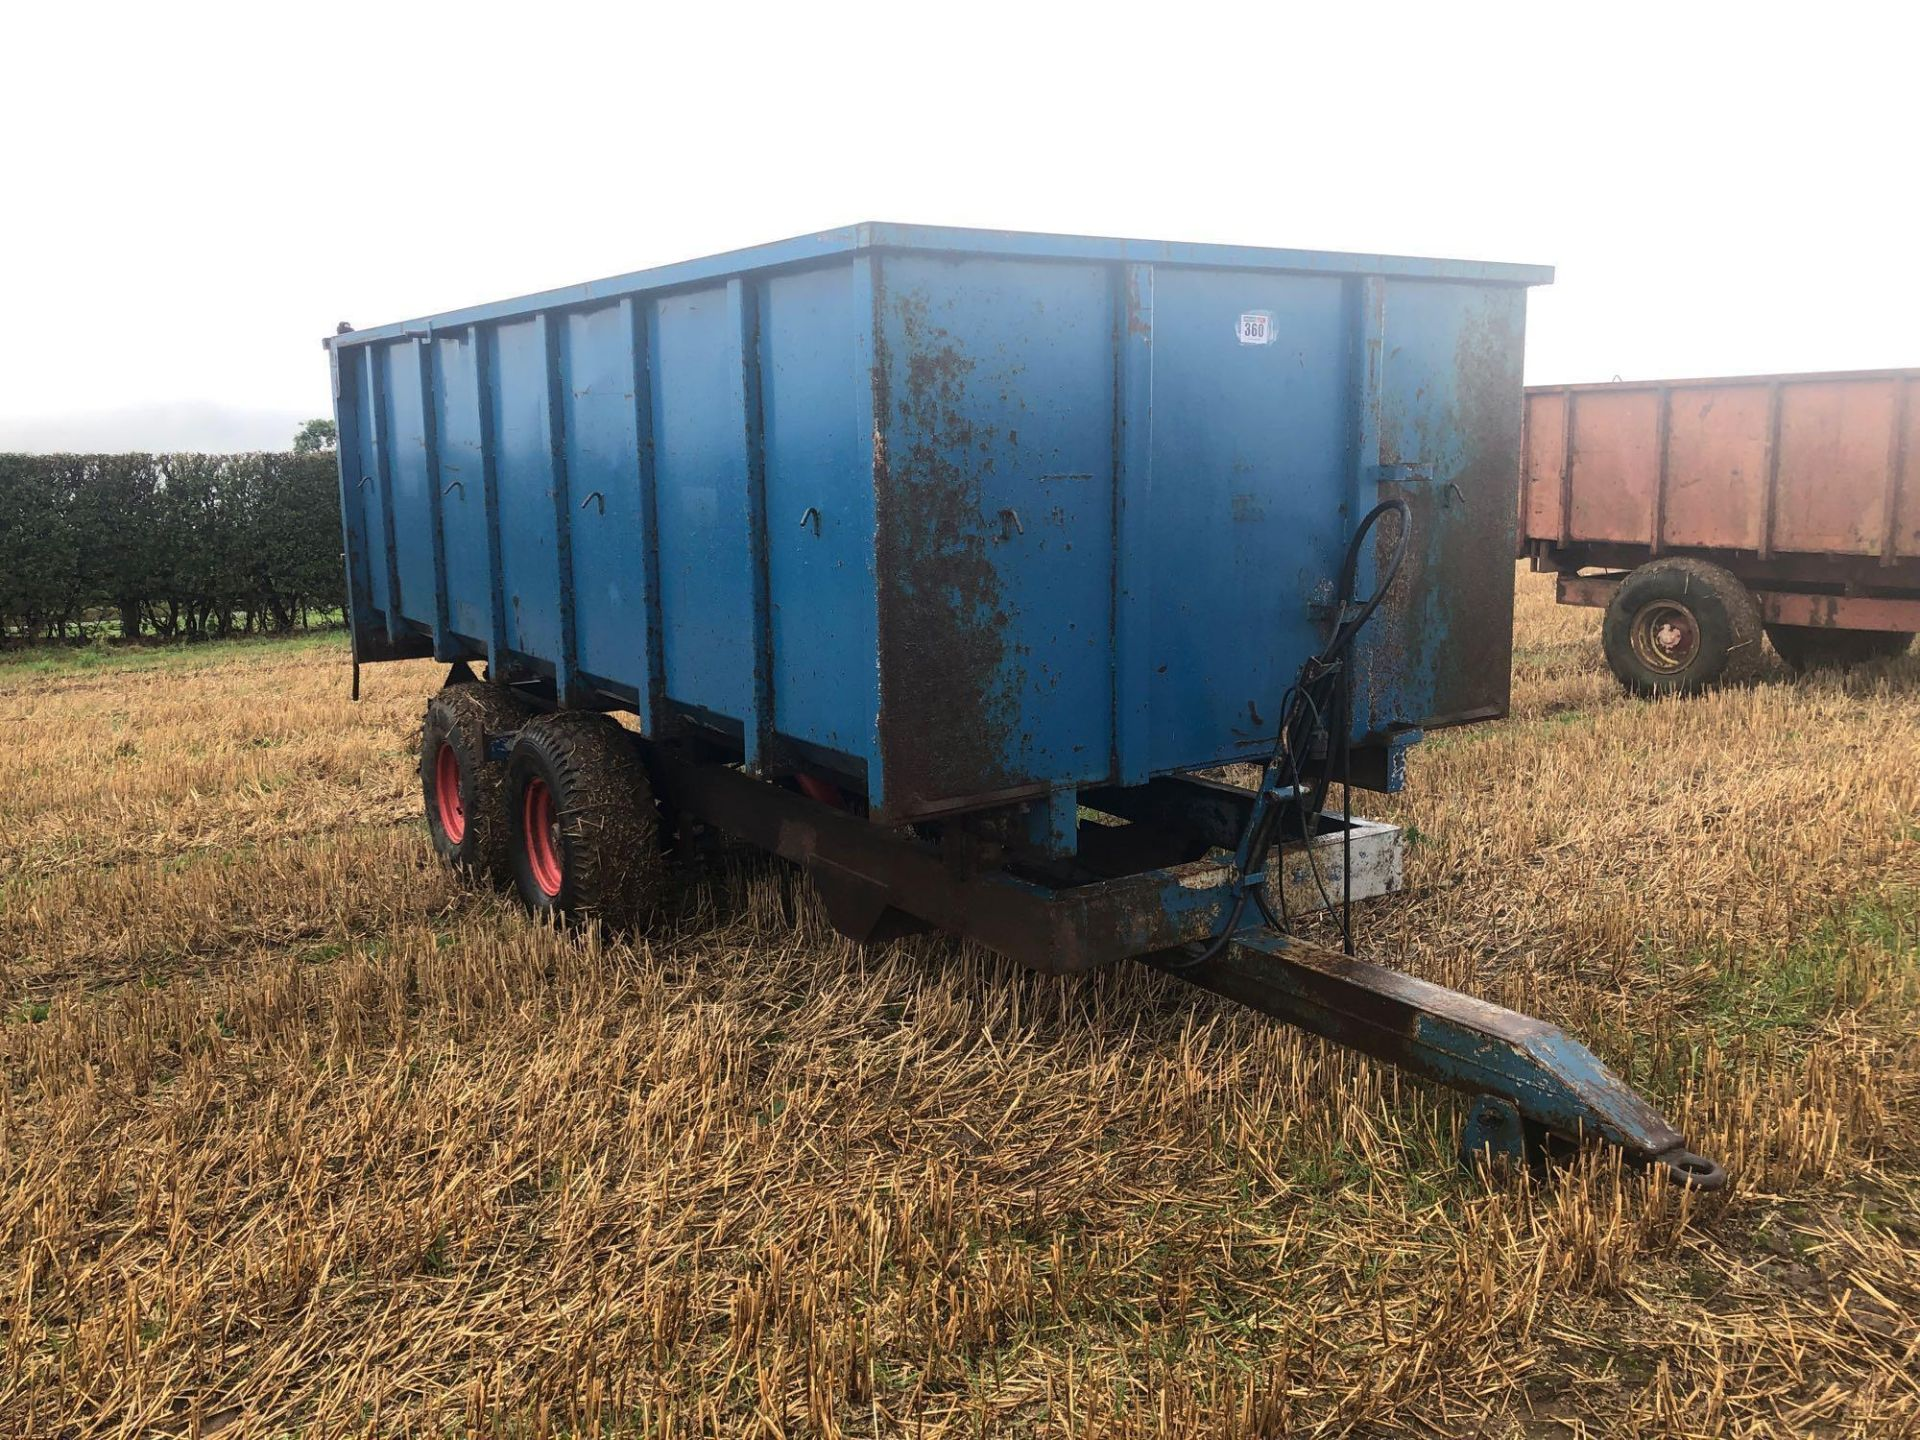 8t twin axle trailer with manual rear door and grain chute. C/w silage sides. On 12.5/80-15.3 wheels - Image 2 of 8